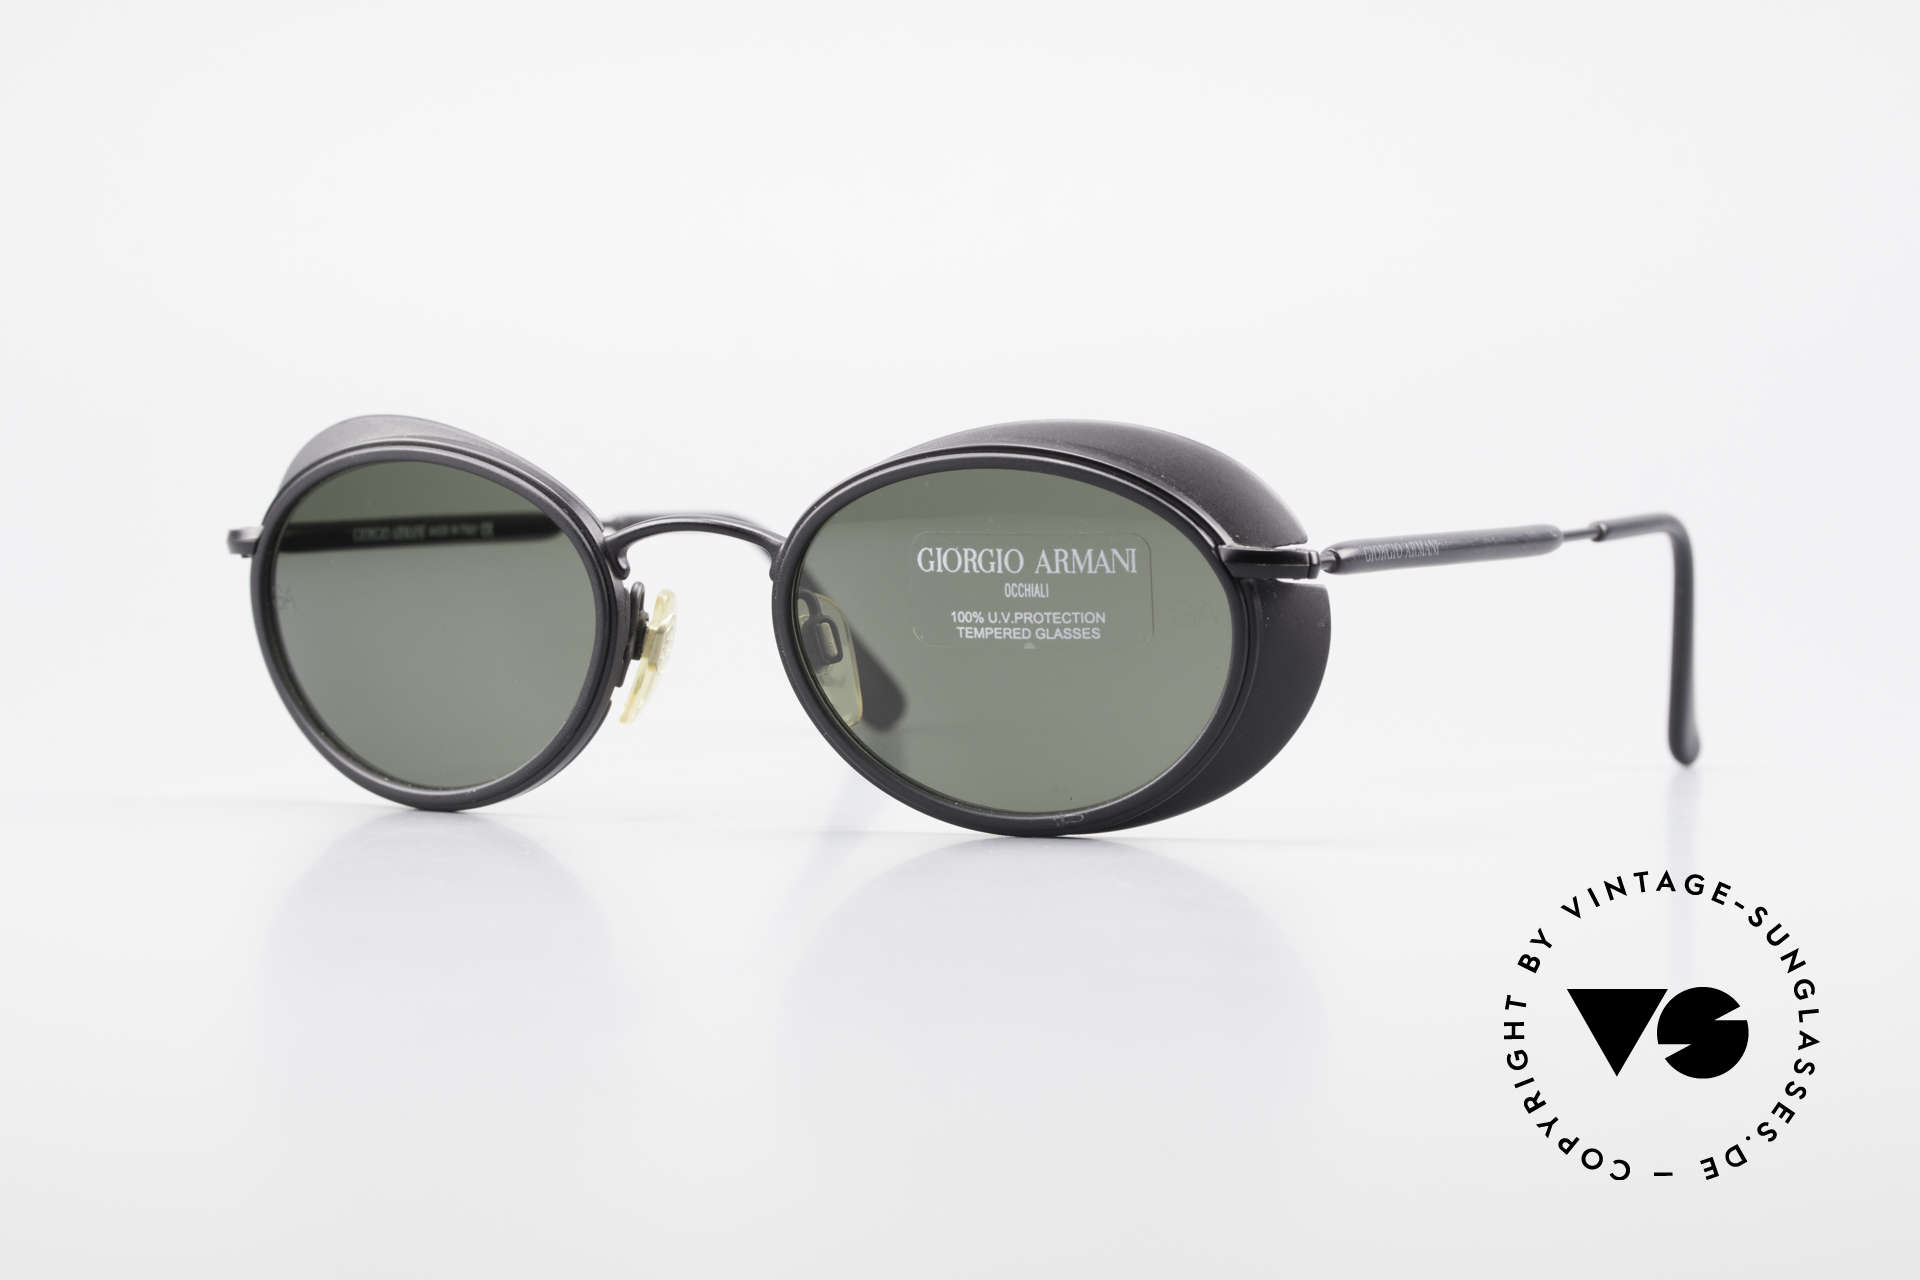 Giorgio Armani 666 Side Shields Frame Oval, 90's Armani designer sunglasses with small side shields, Made for Men and Women